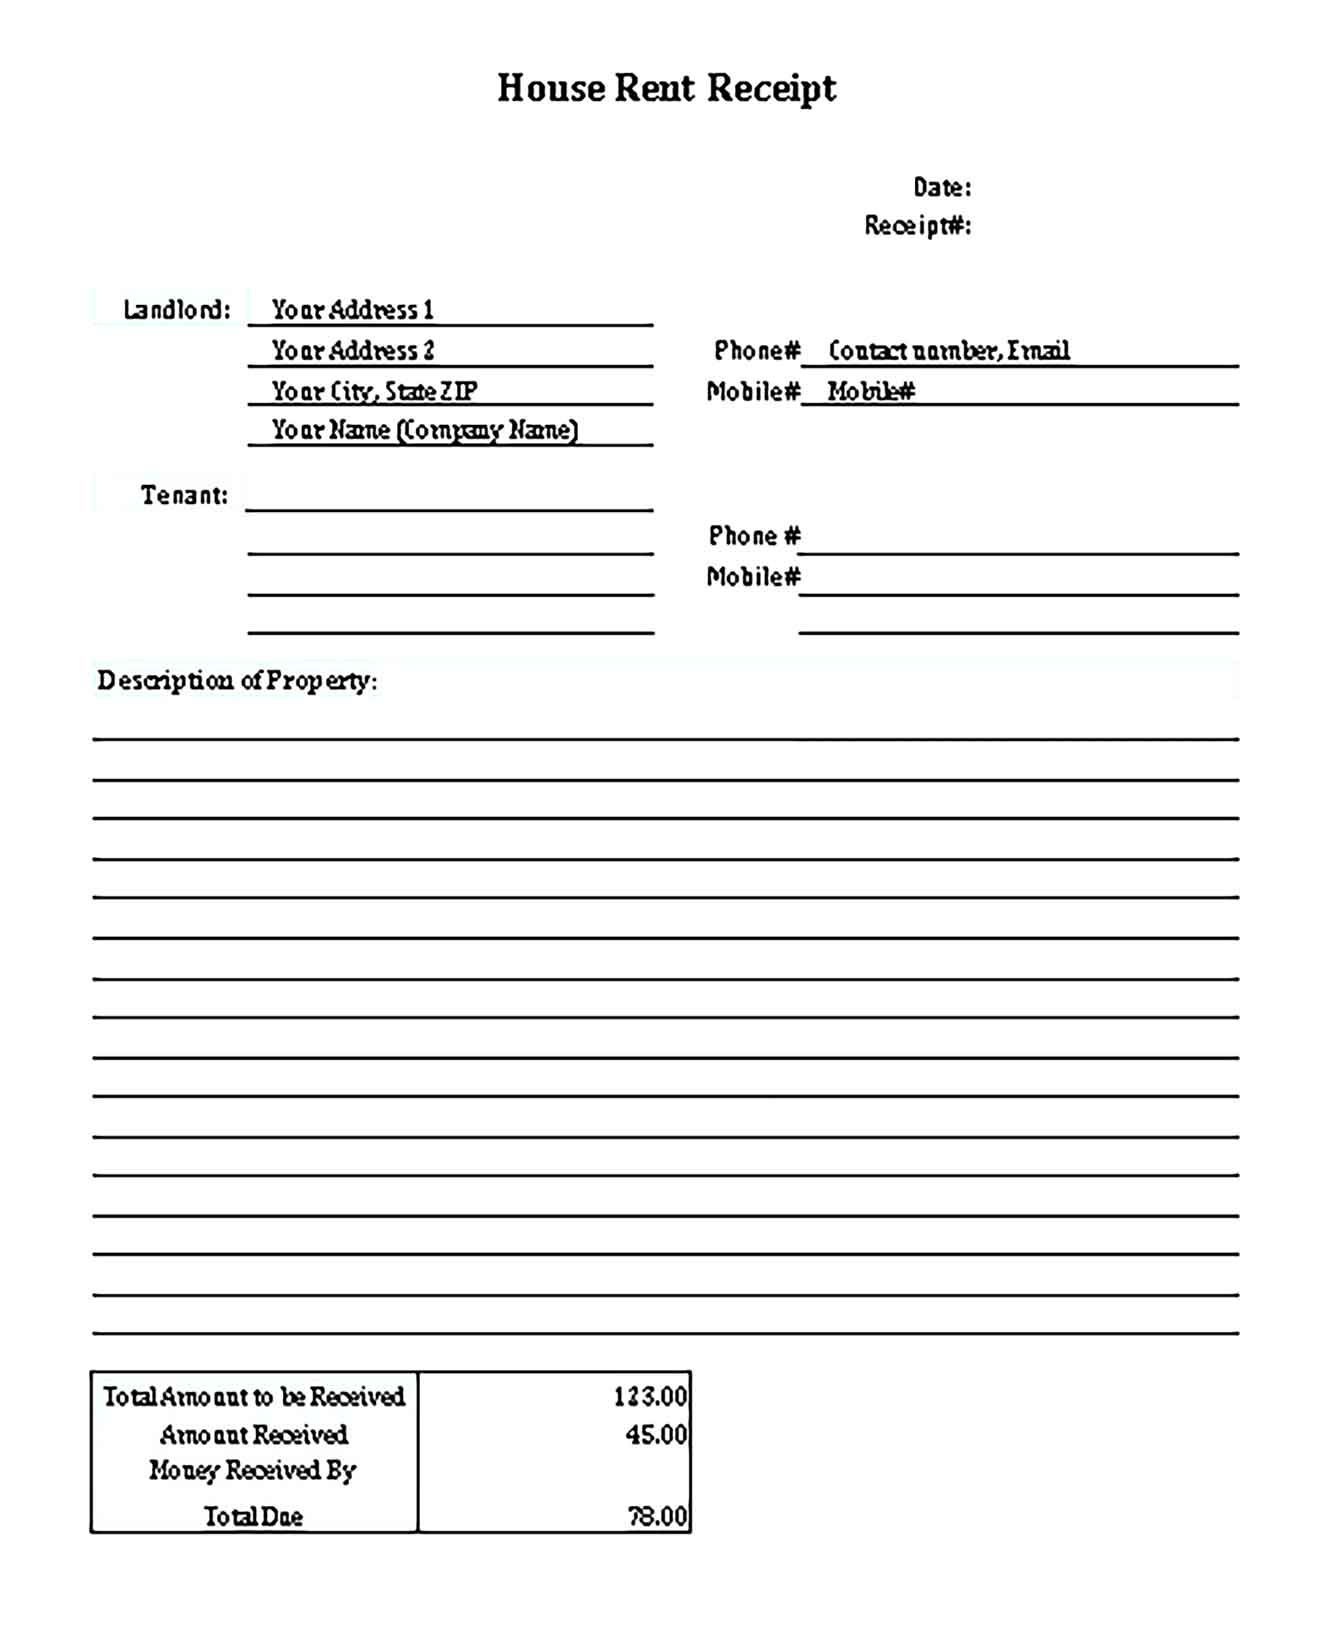 Sample House Rent Receipt Templates 2